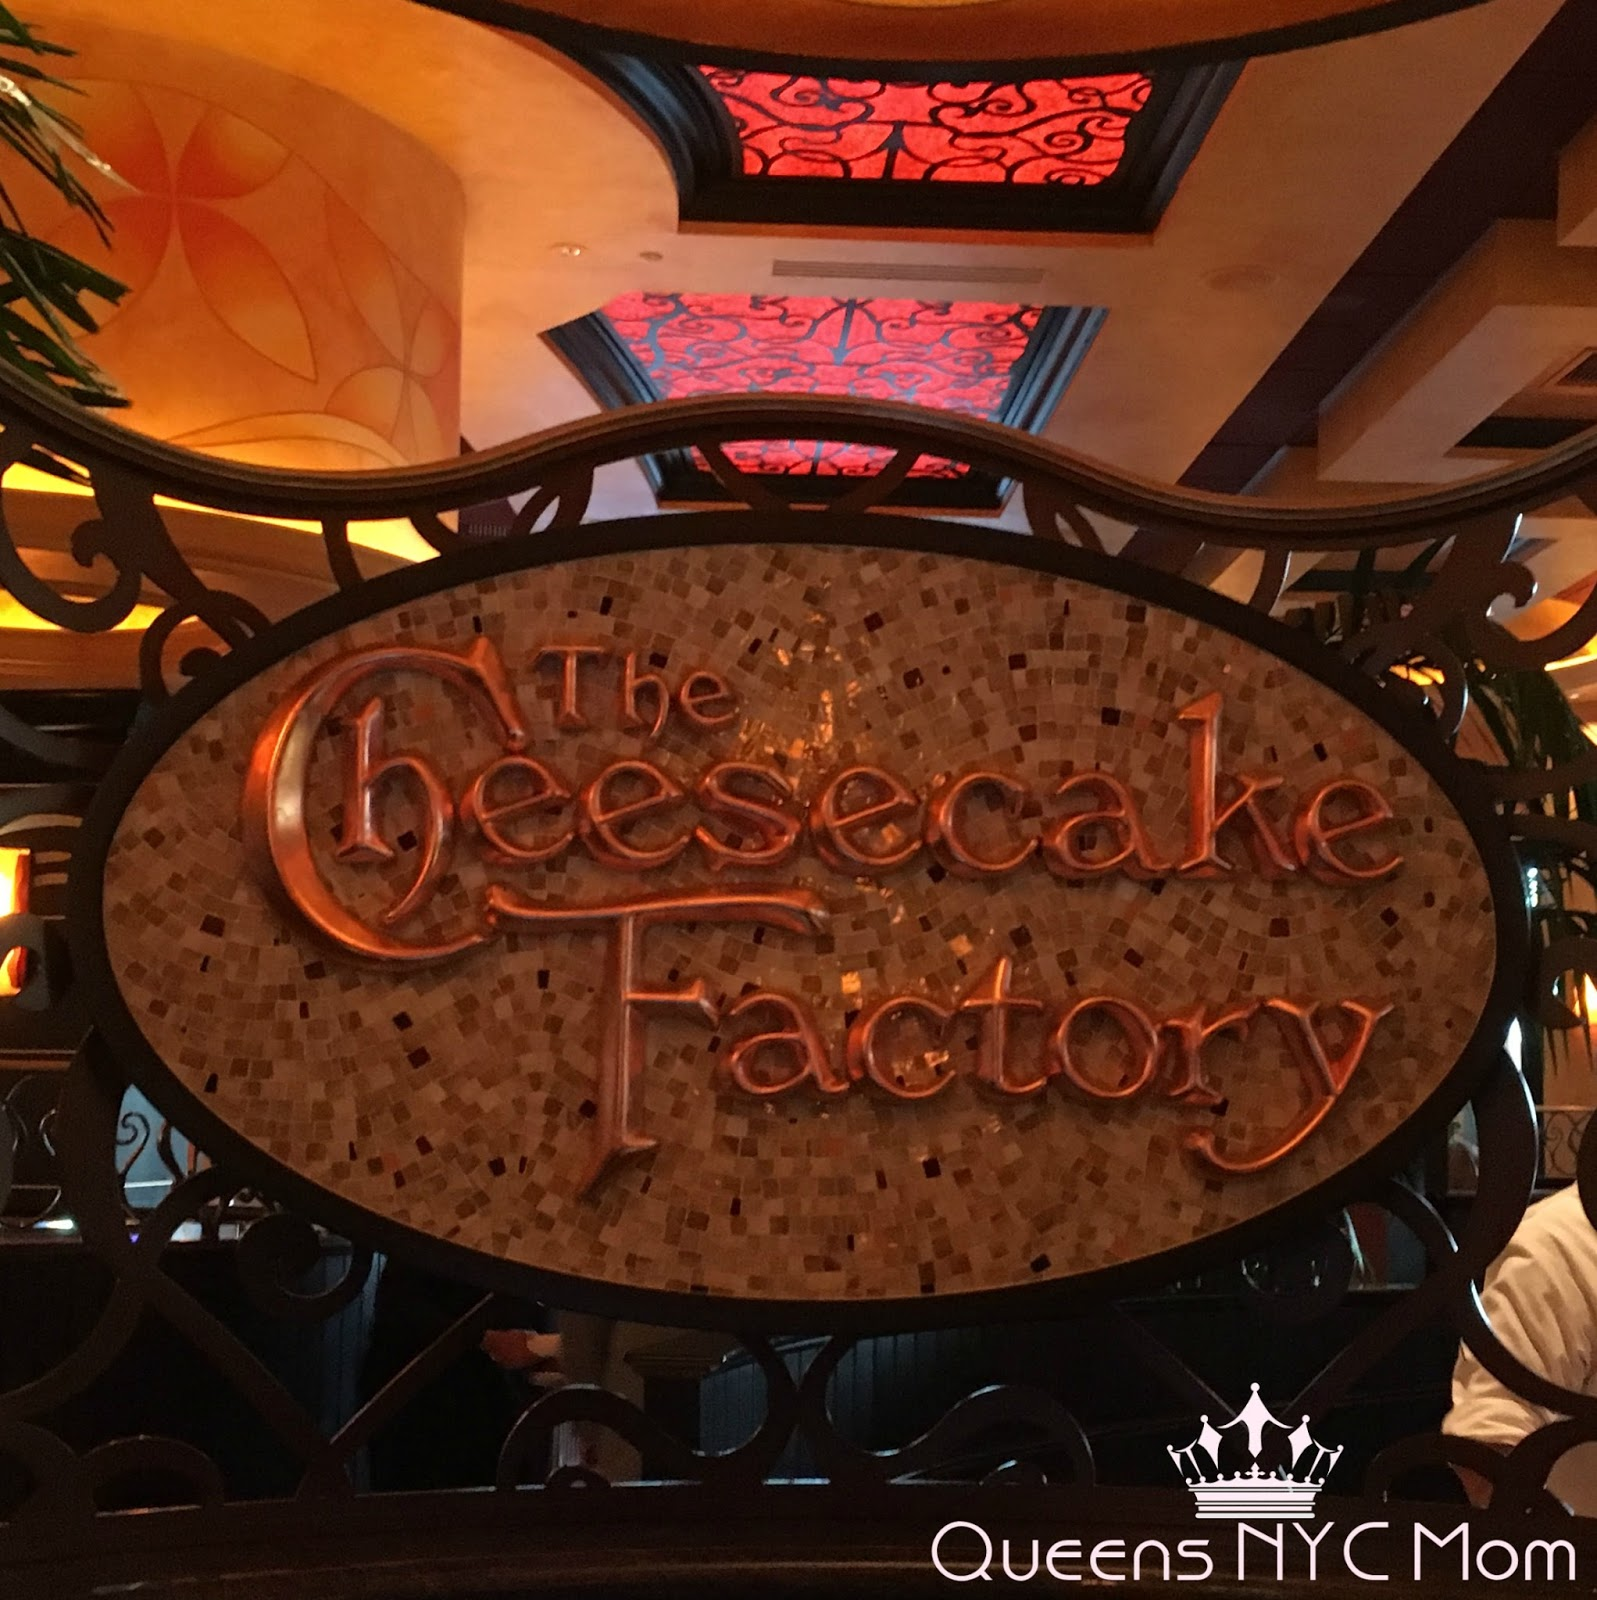 Kitchen Design Queens Ny: #REVIEW The Cheesecake Factory Restaurant